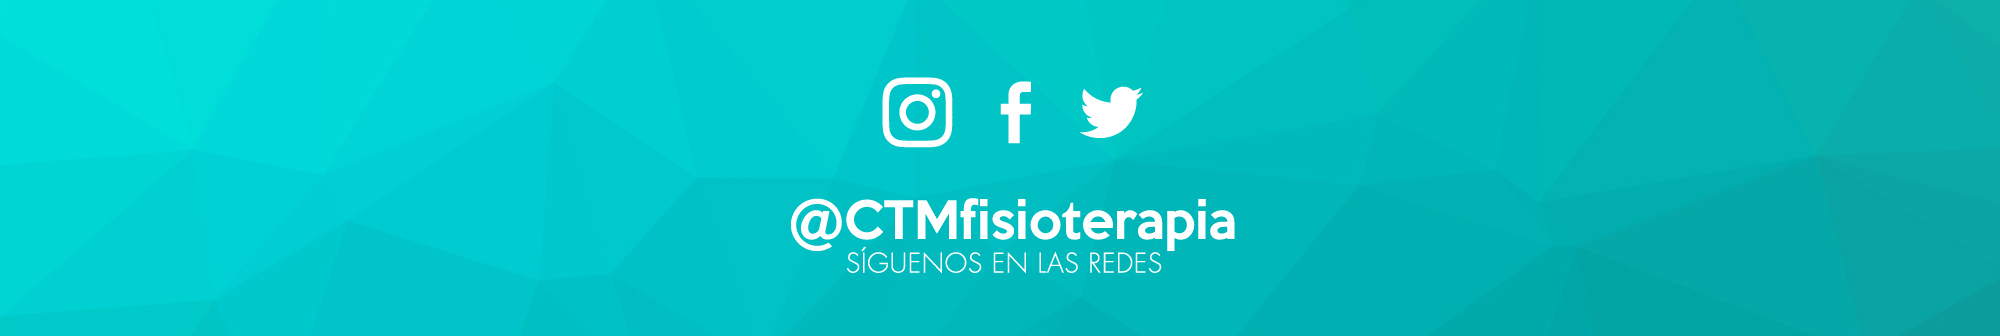 REDES-CTM-Fisioterapia